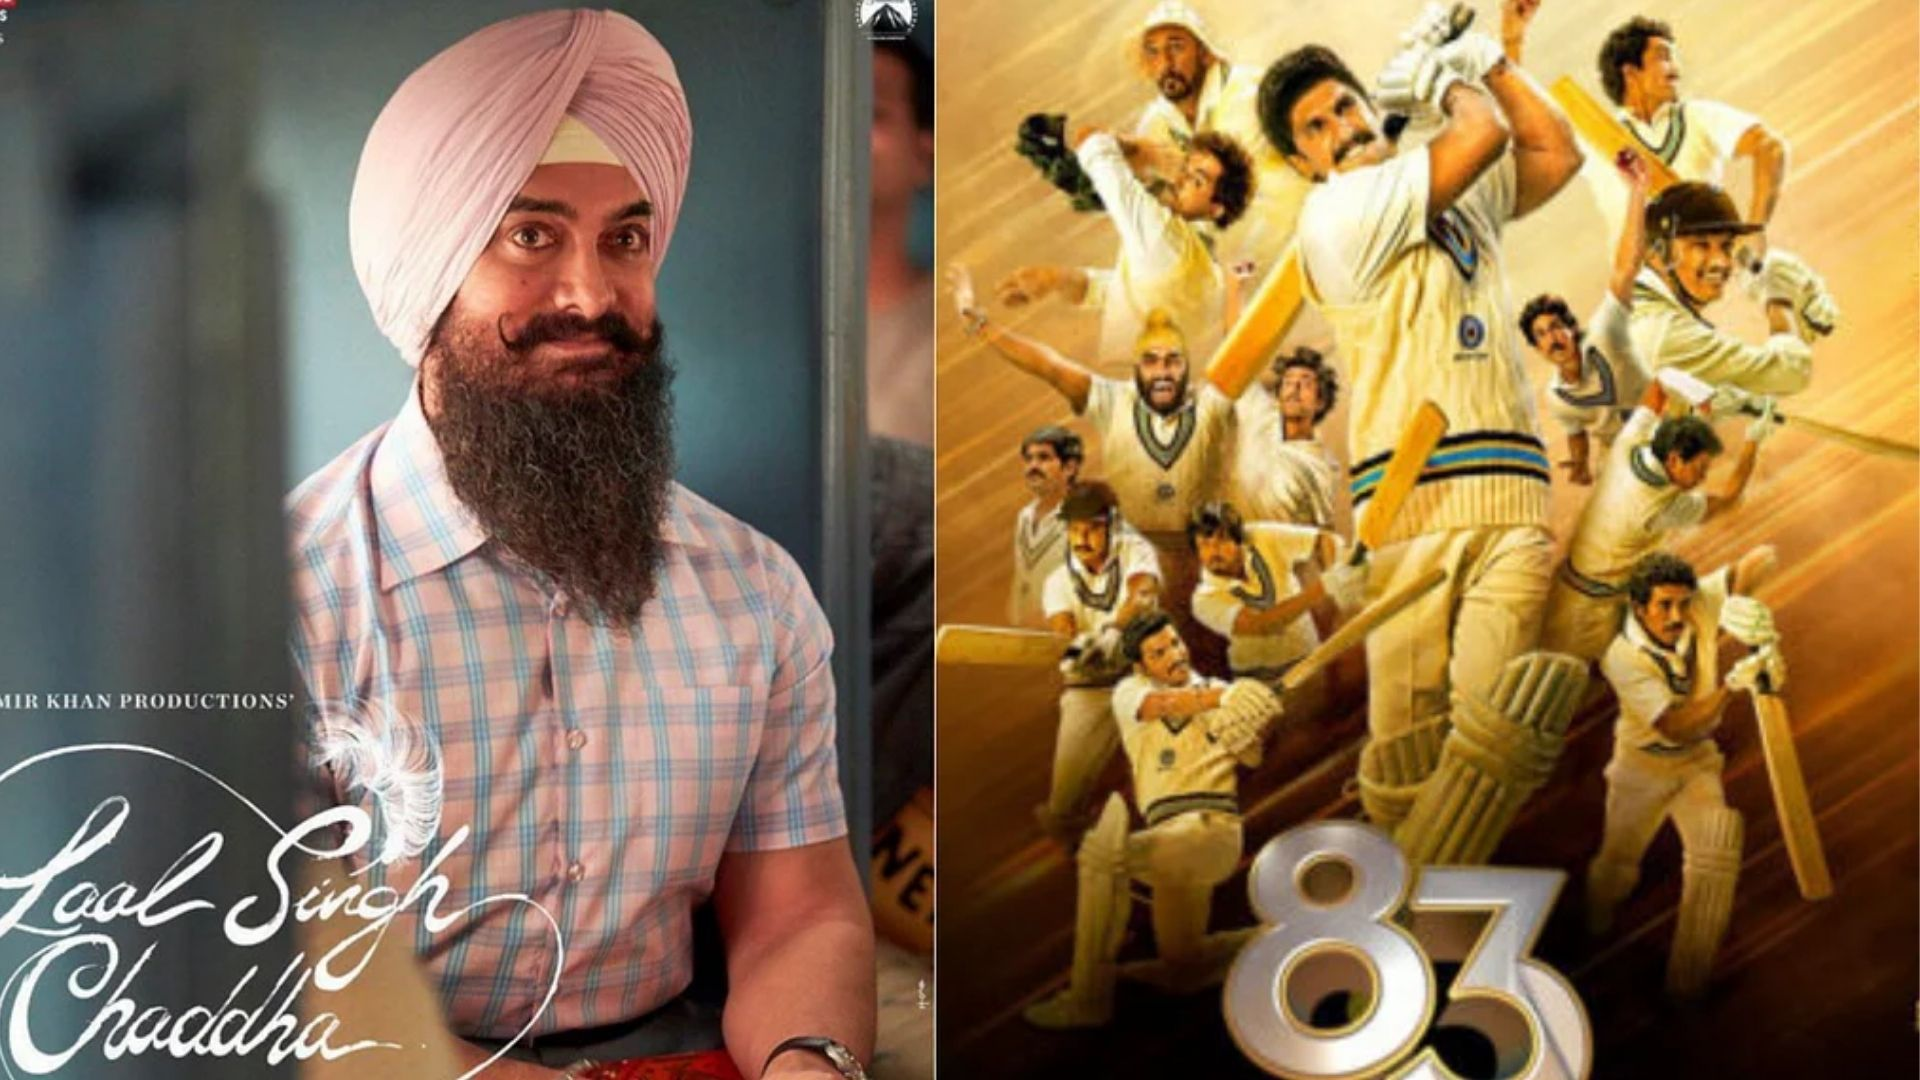 Aamir Khan Makes Way For Ranveer Singh's 83; Laal Singh Chaddha's Release Date Pushed To Valentine's Day 2022